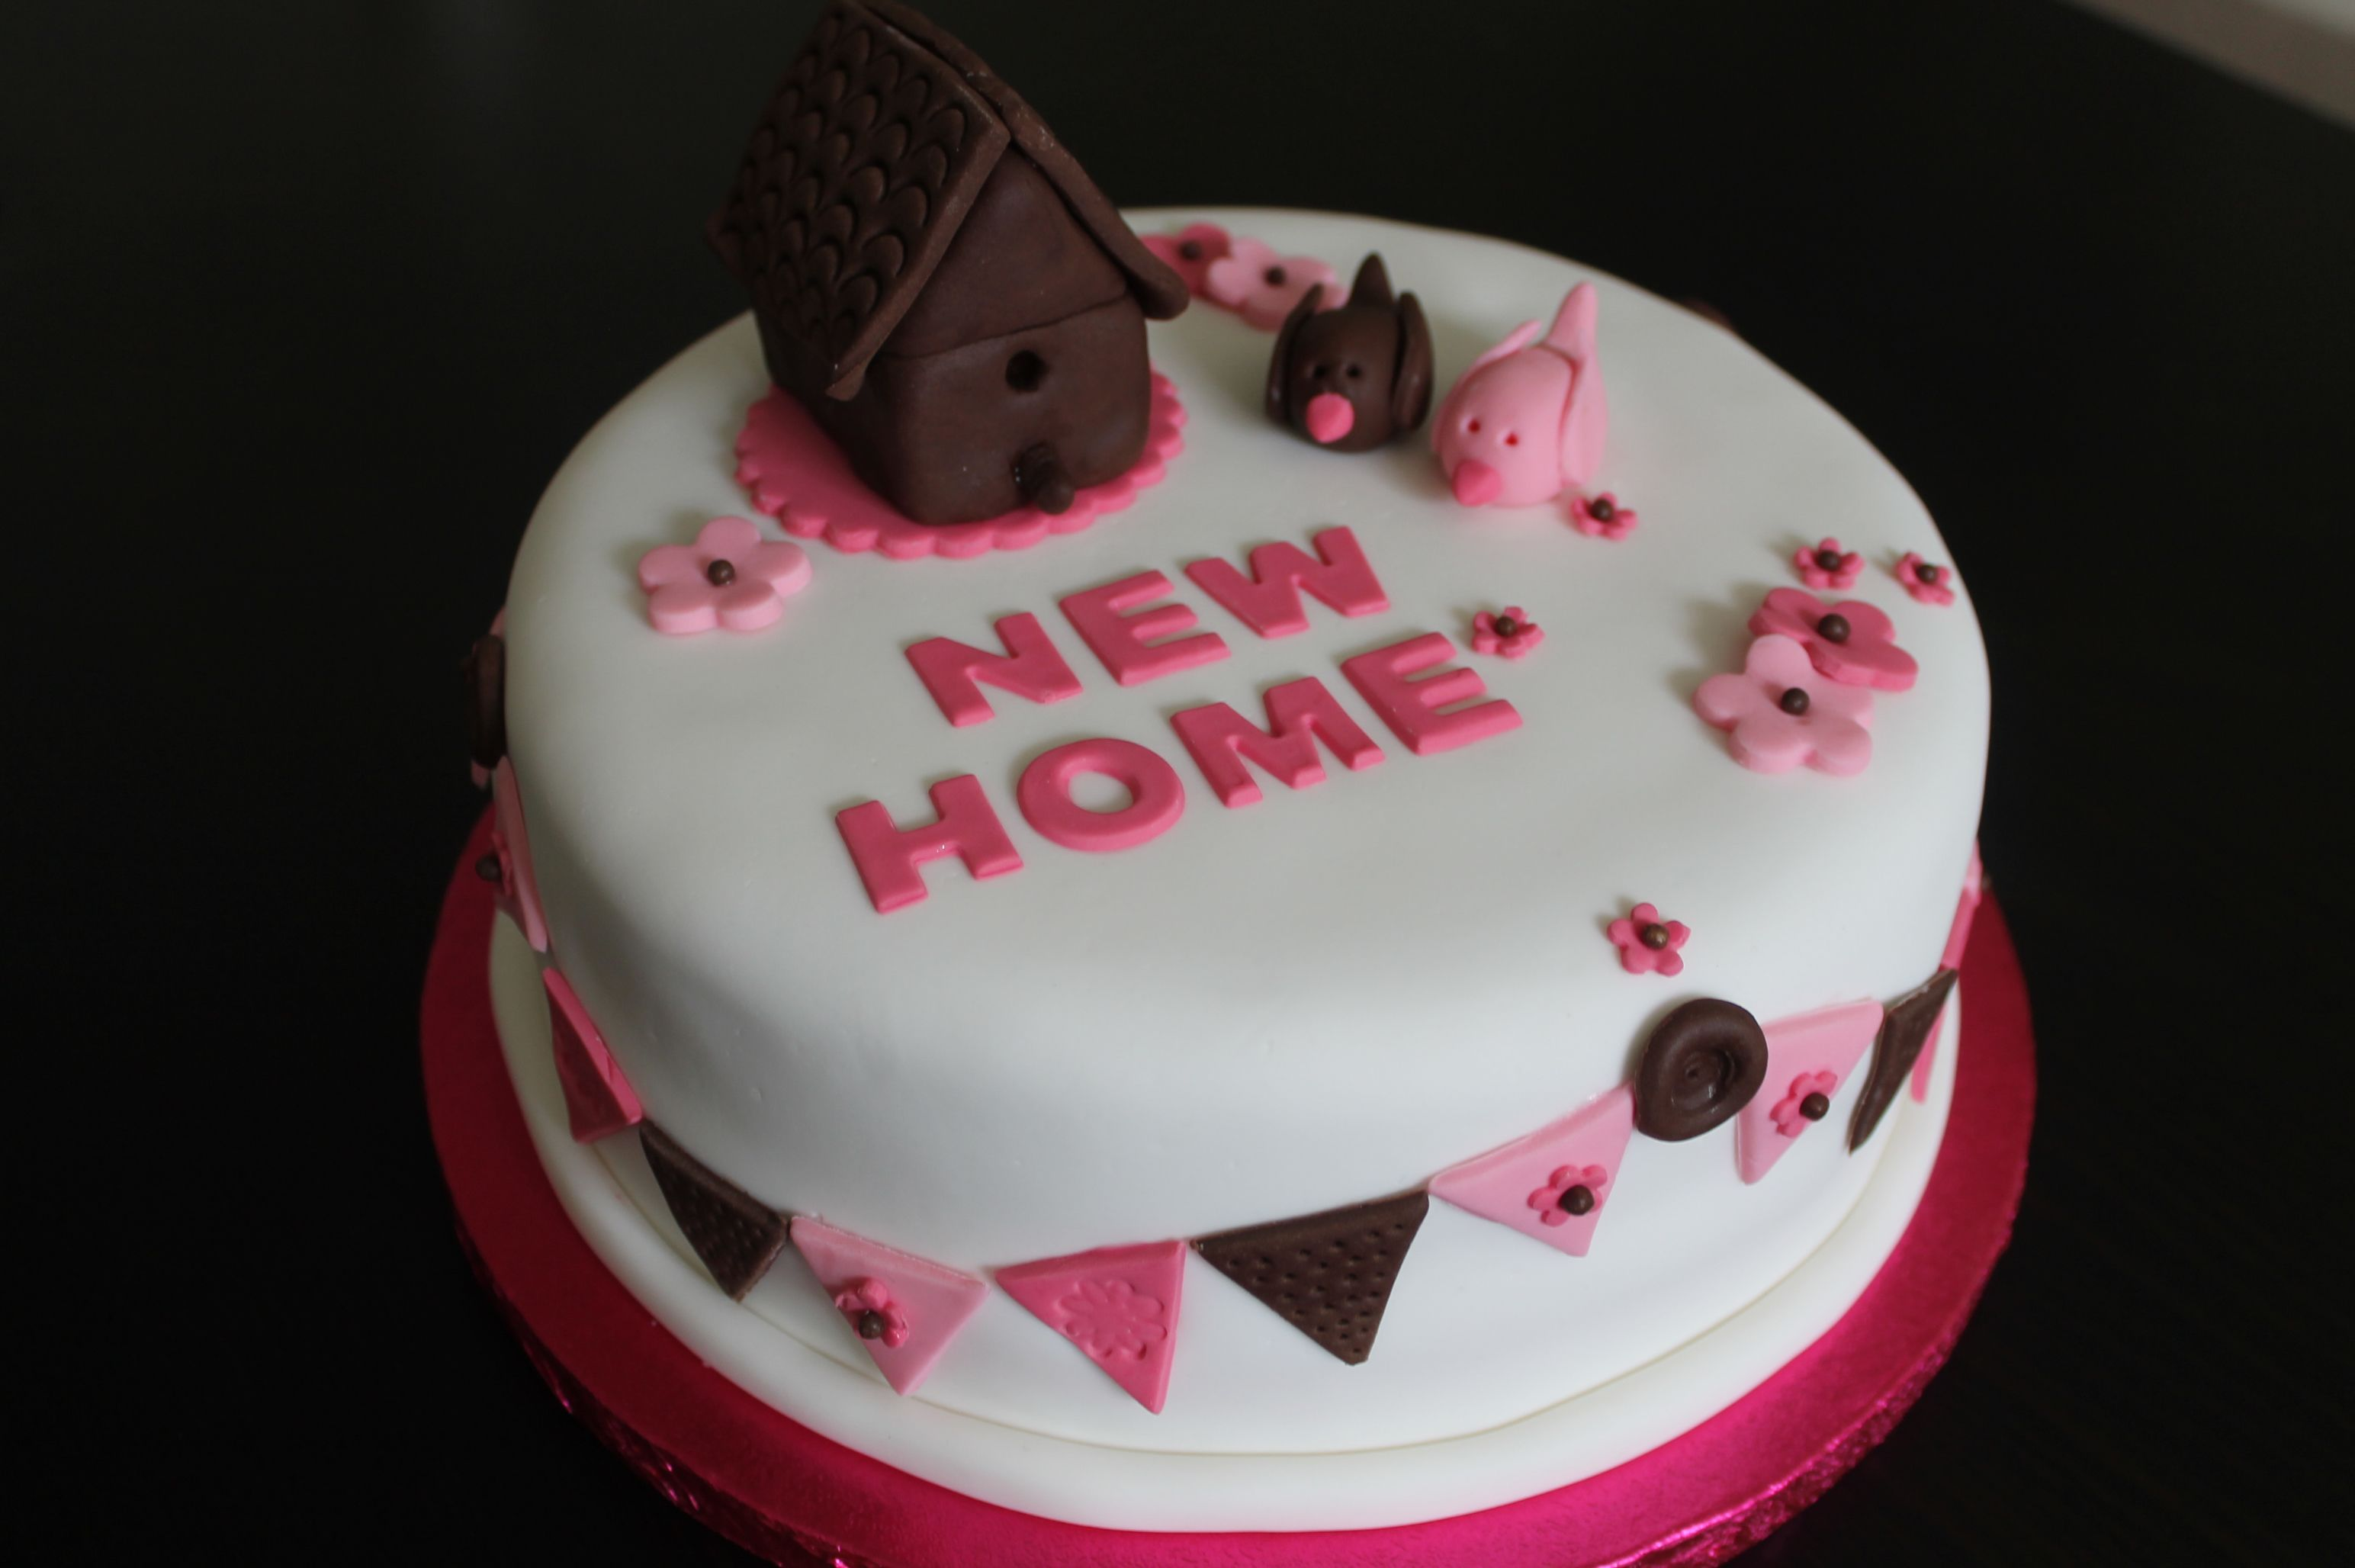 Great New Home Cake   For All Your Cake Decorating Supplies, Please Visit  Craftcompany.co Photo Gallery